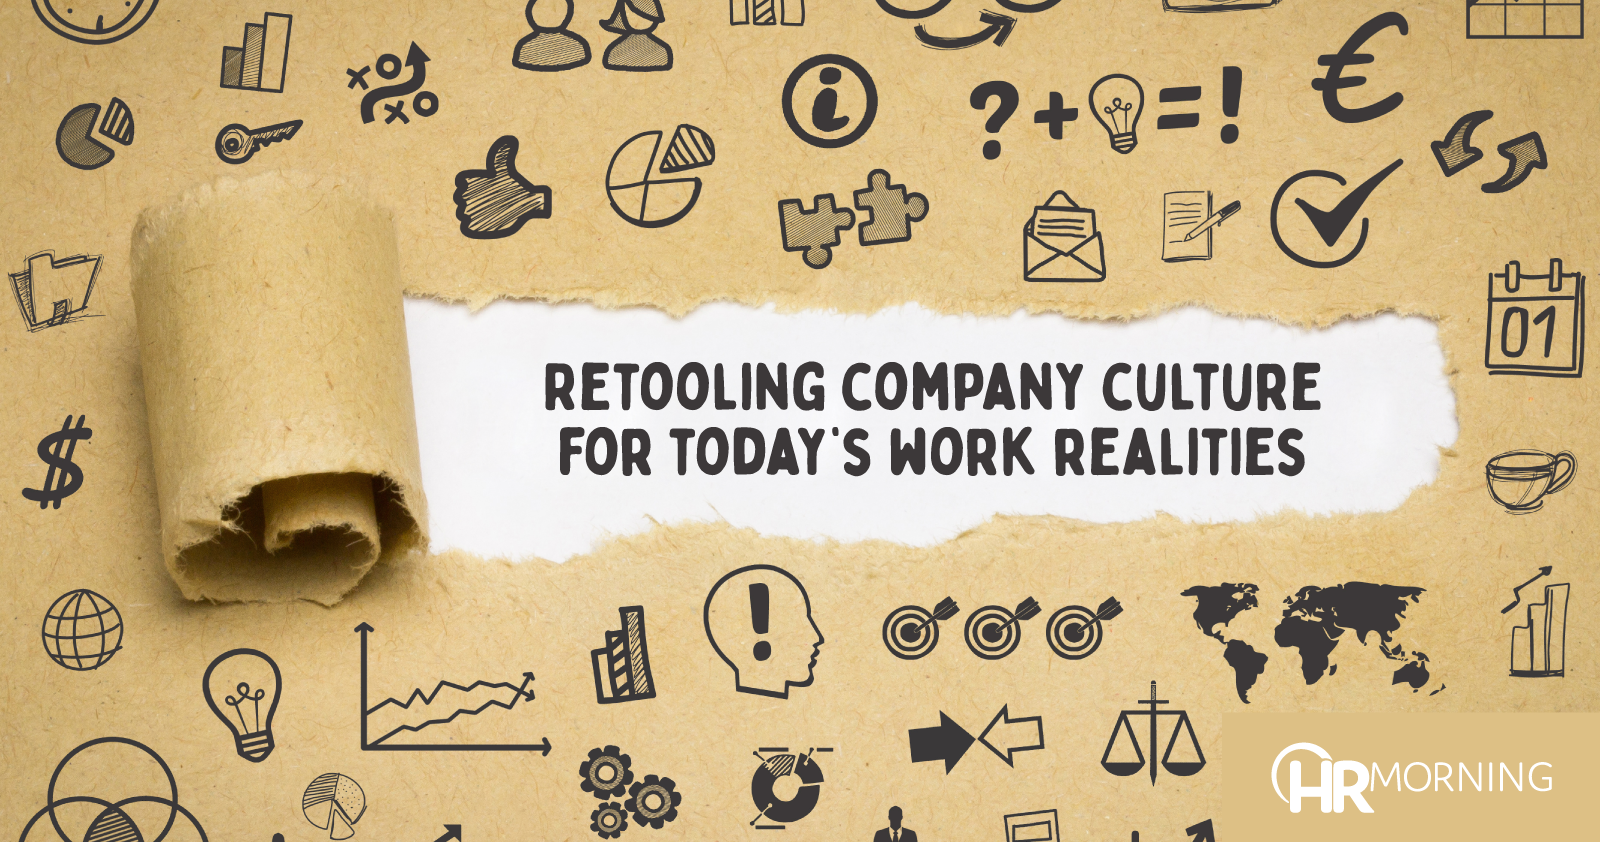 retooling company culture for todays work realities